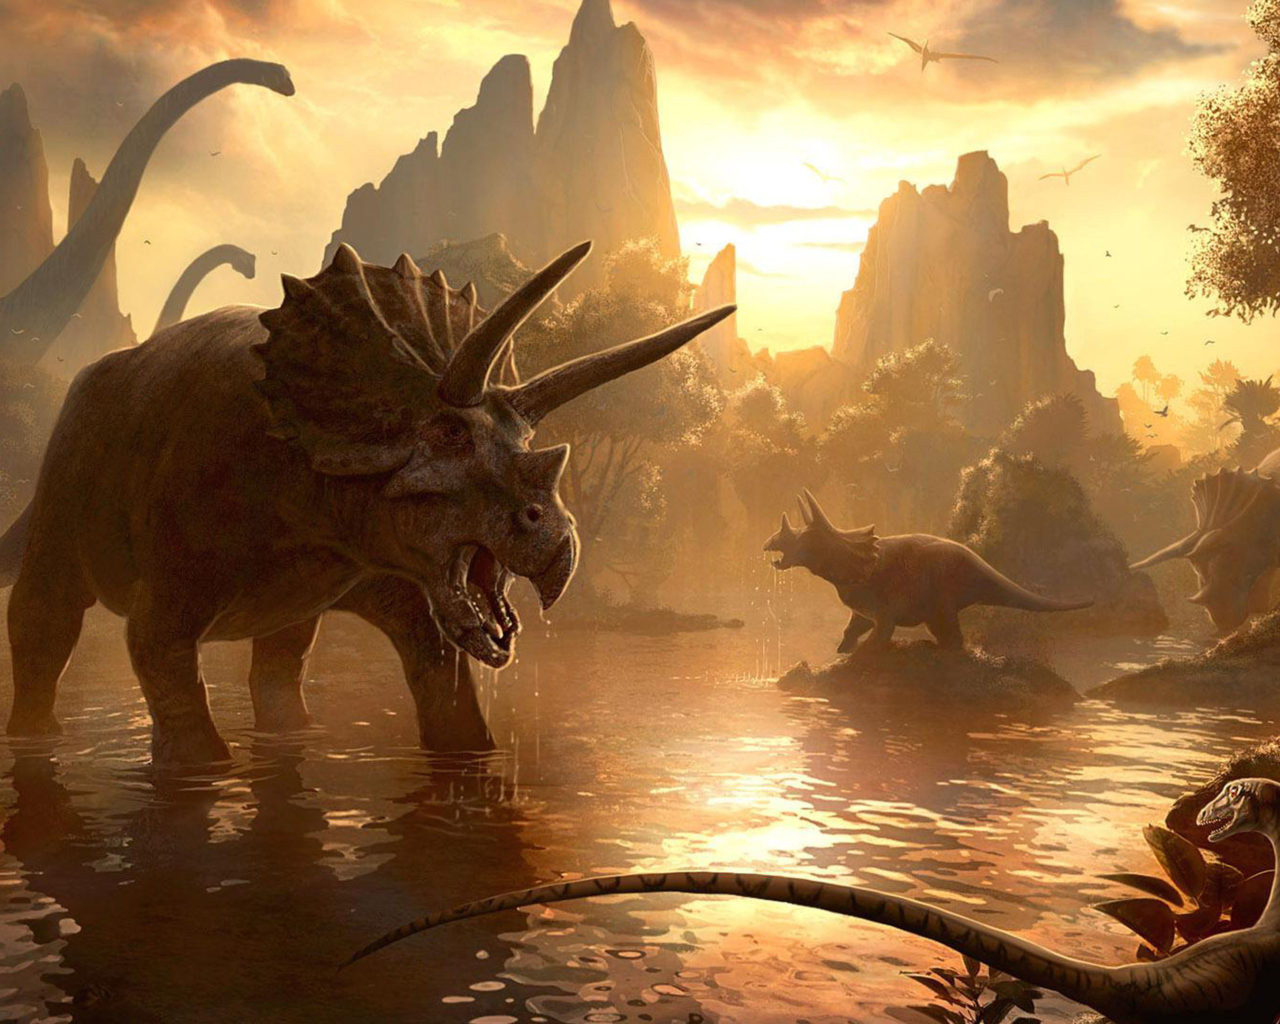 Awesome Hd Wallpapers For Pc Animals Of The Past Ancient World Of Dinosaurs Desktop Hd